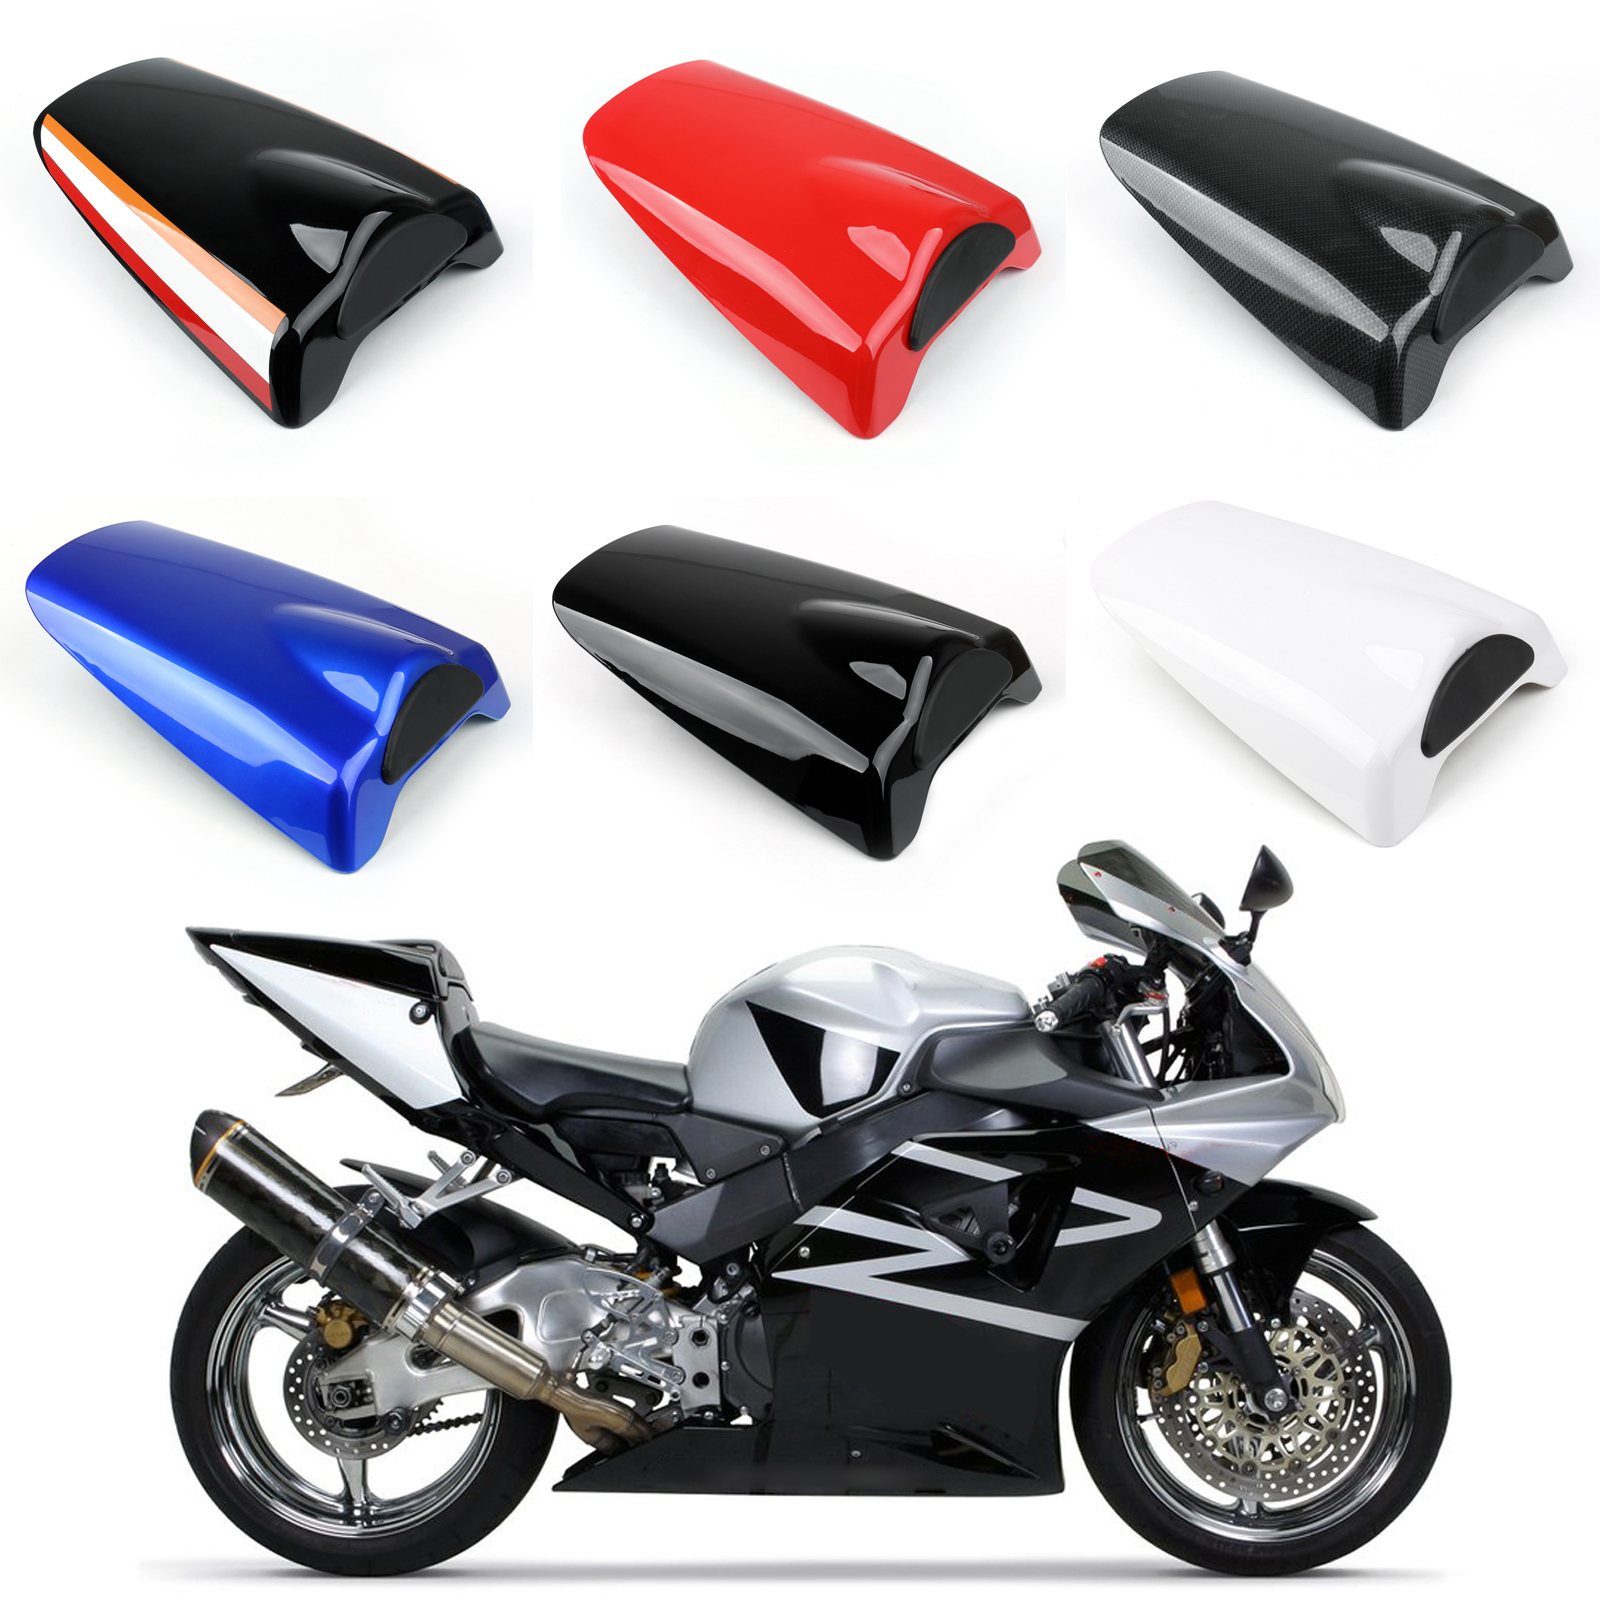 Red Rear Seat Fairing Cover Cowl For CBR954RR 2002-2003